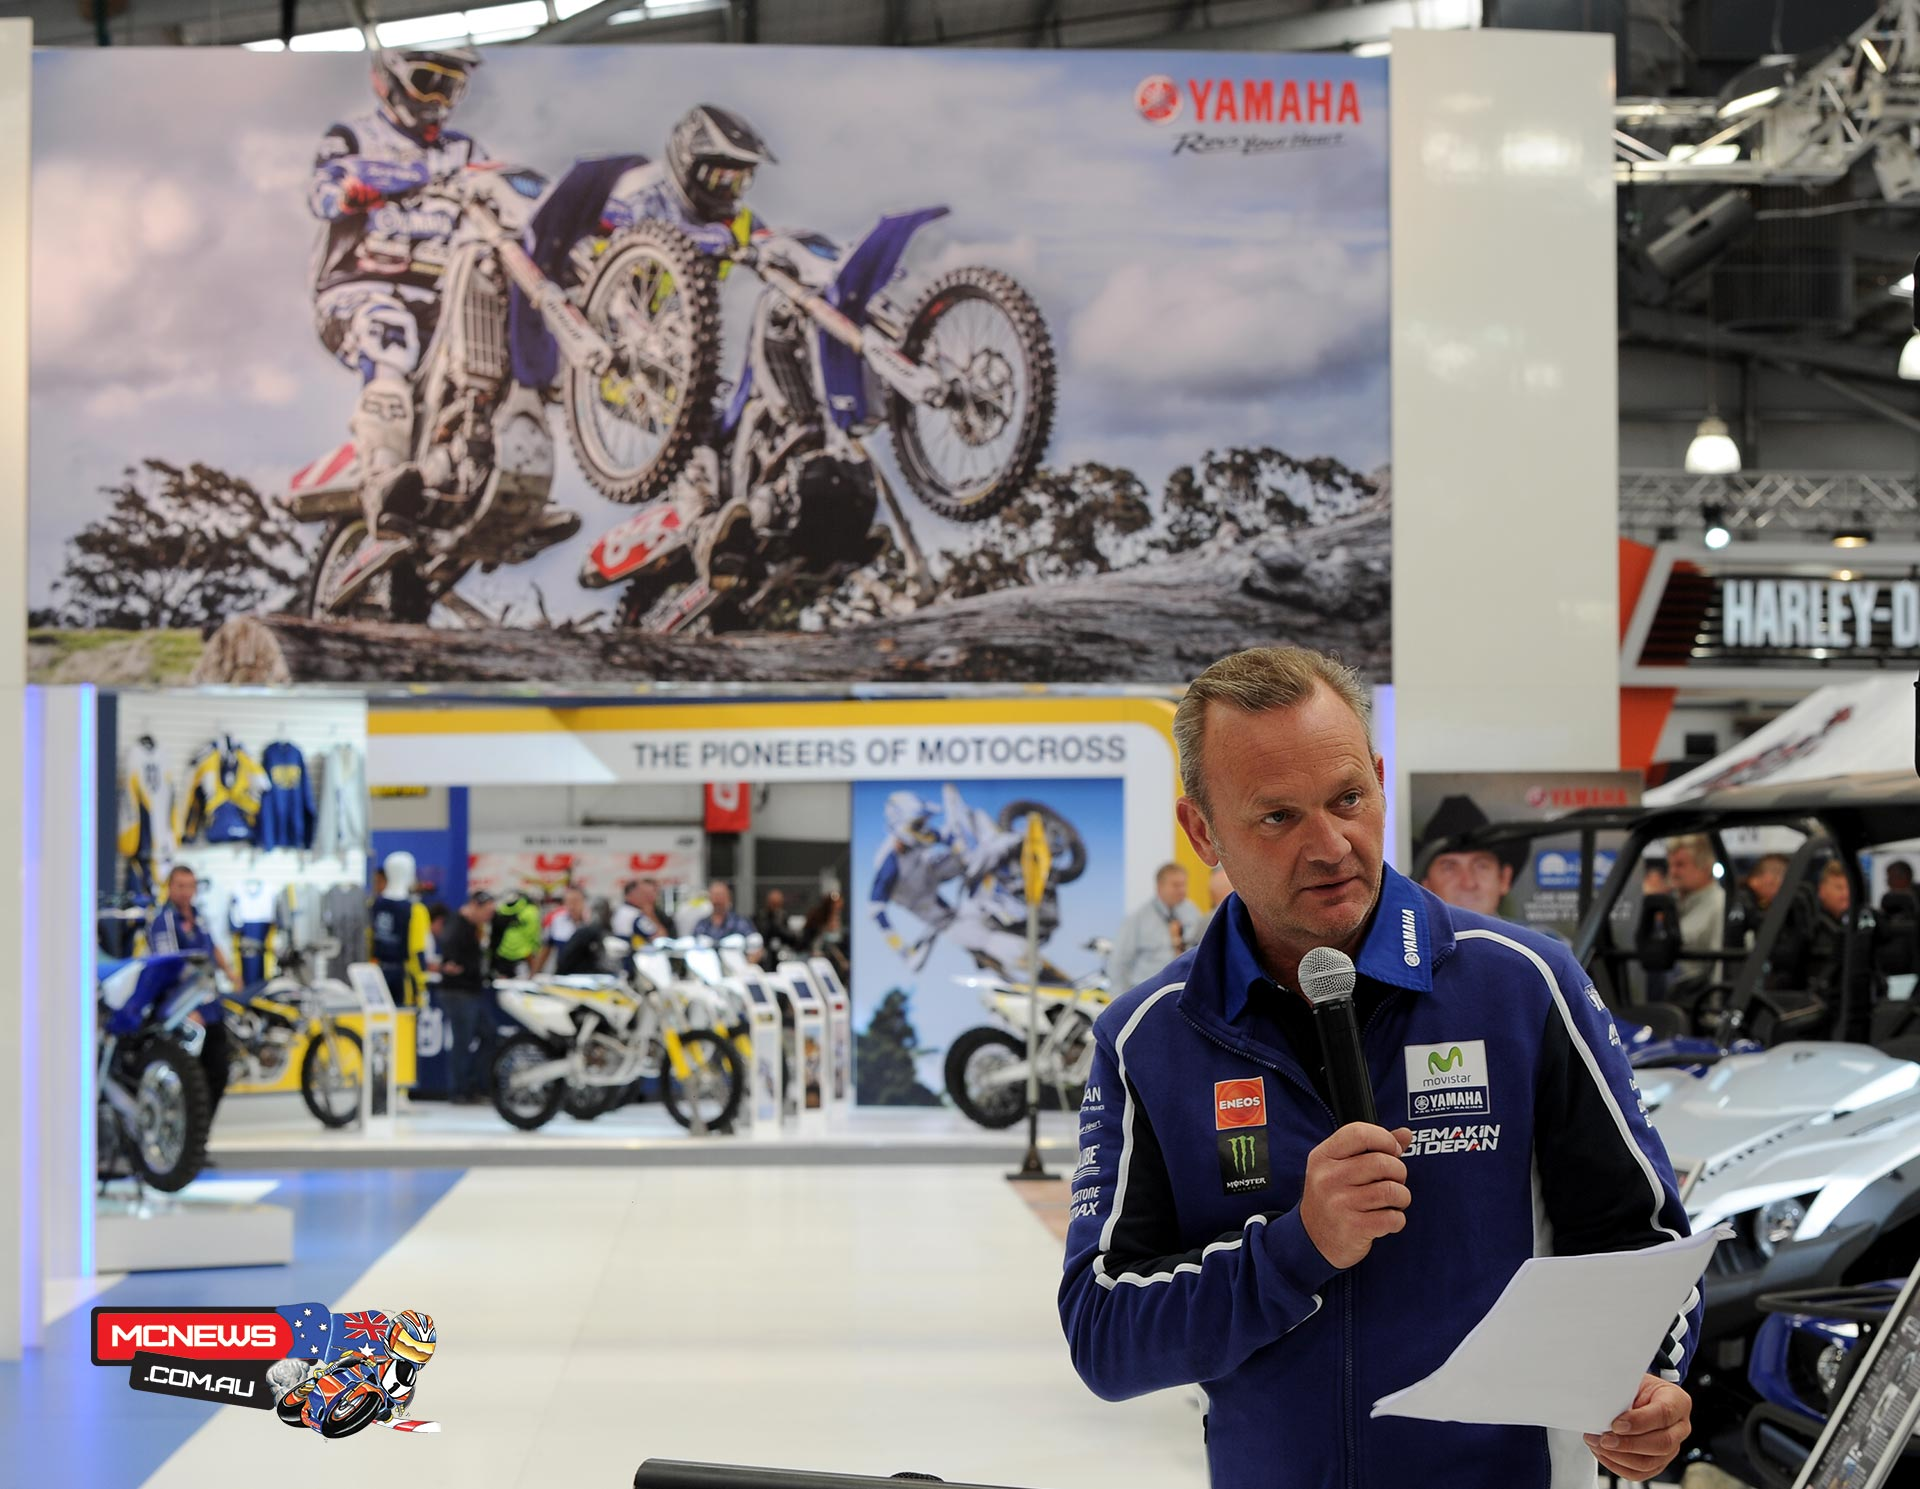 Yamaha's Sean Goldhawk presented new Yamaha product at Moto Expo